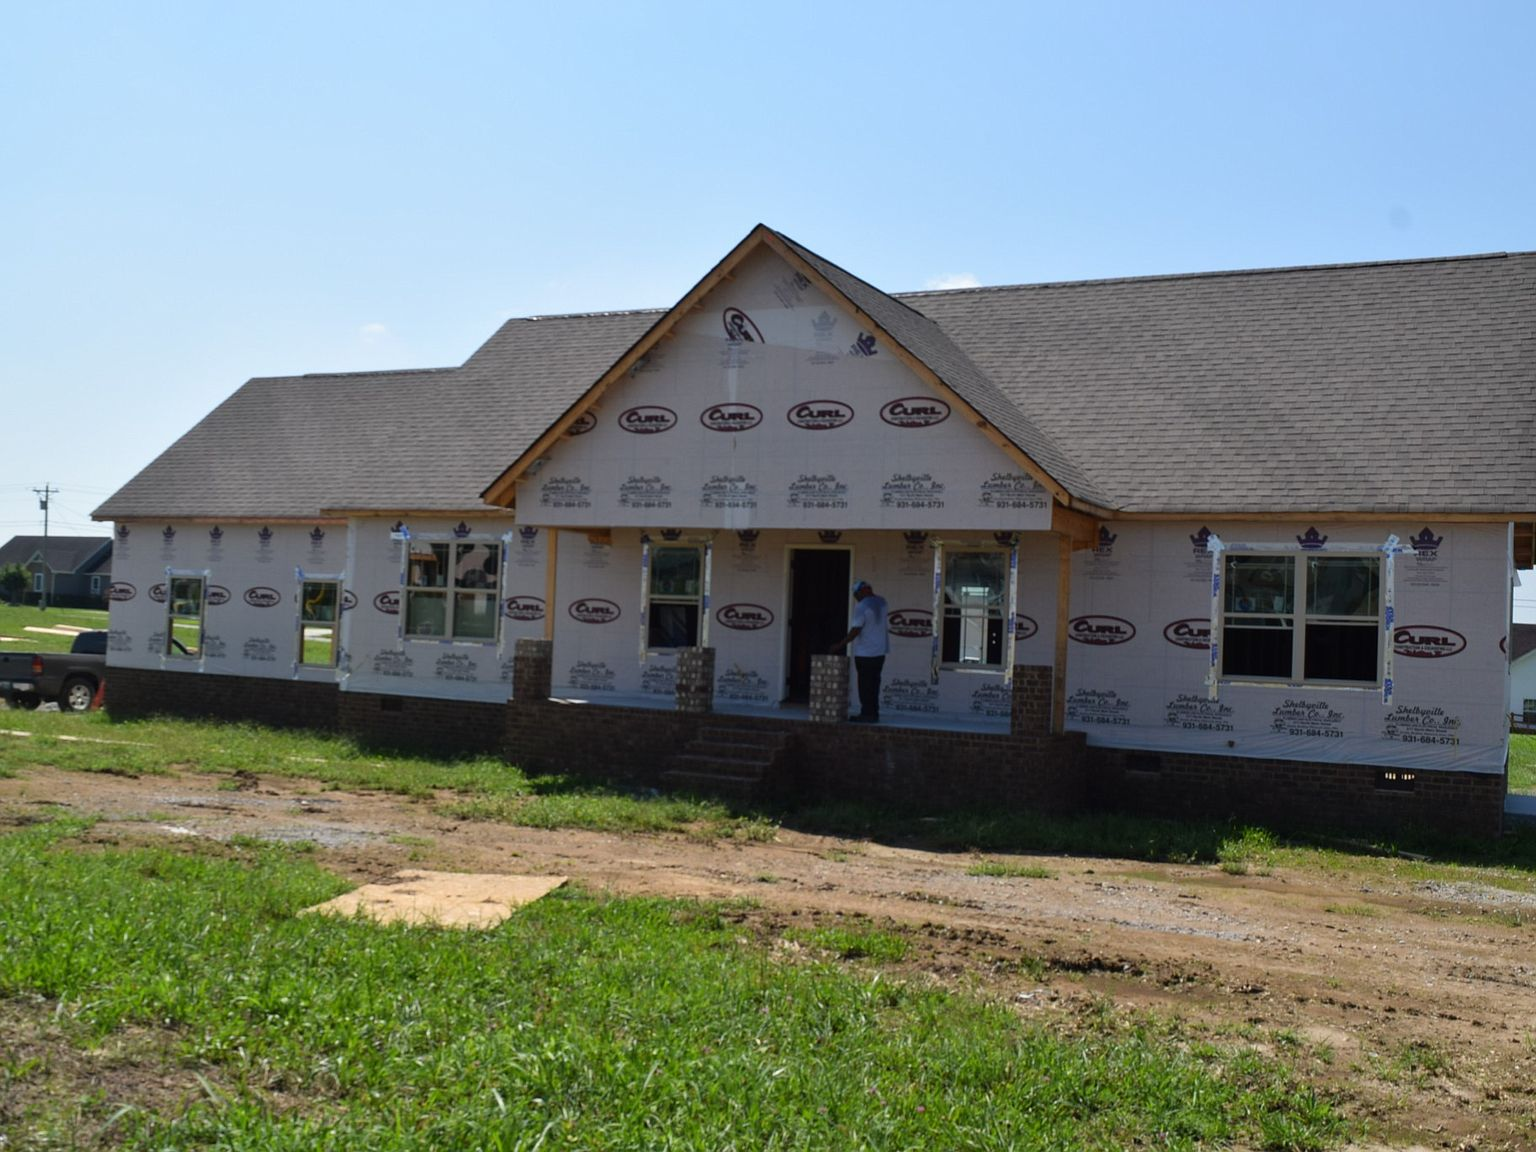 1106 Richland Farms Dr, Manchester, TN 37355 | MLS #2283027 | Zillow